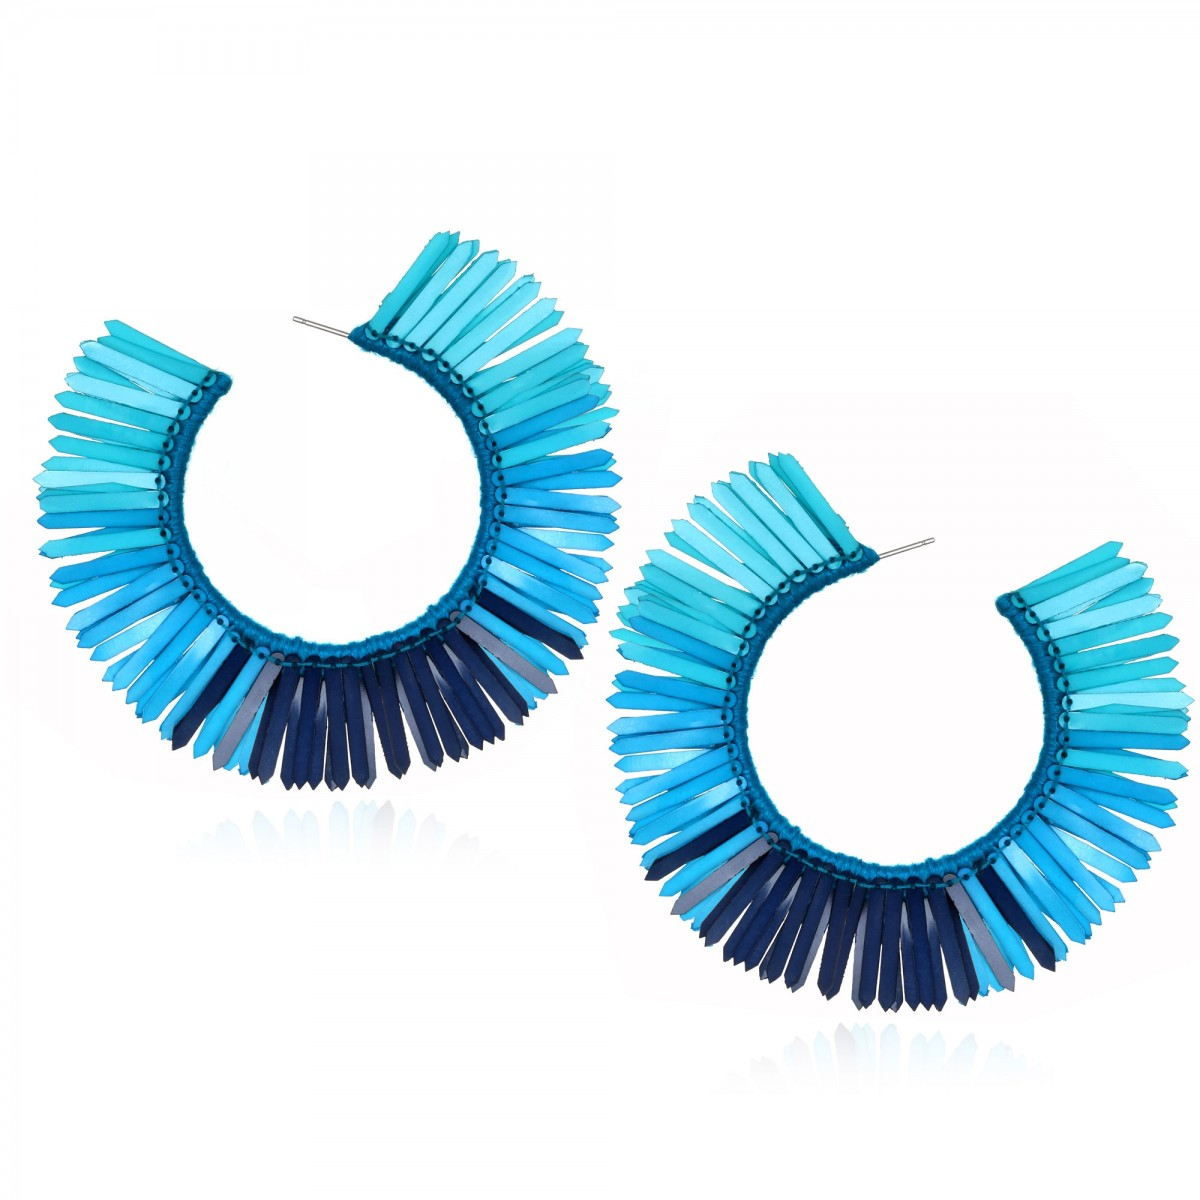 Turquoise Karaja Hoop Earrings by SUZANNA DAI